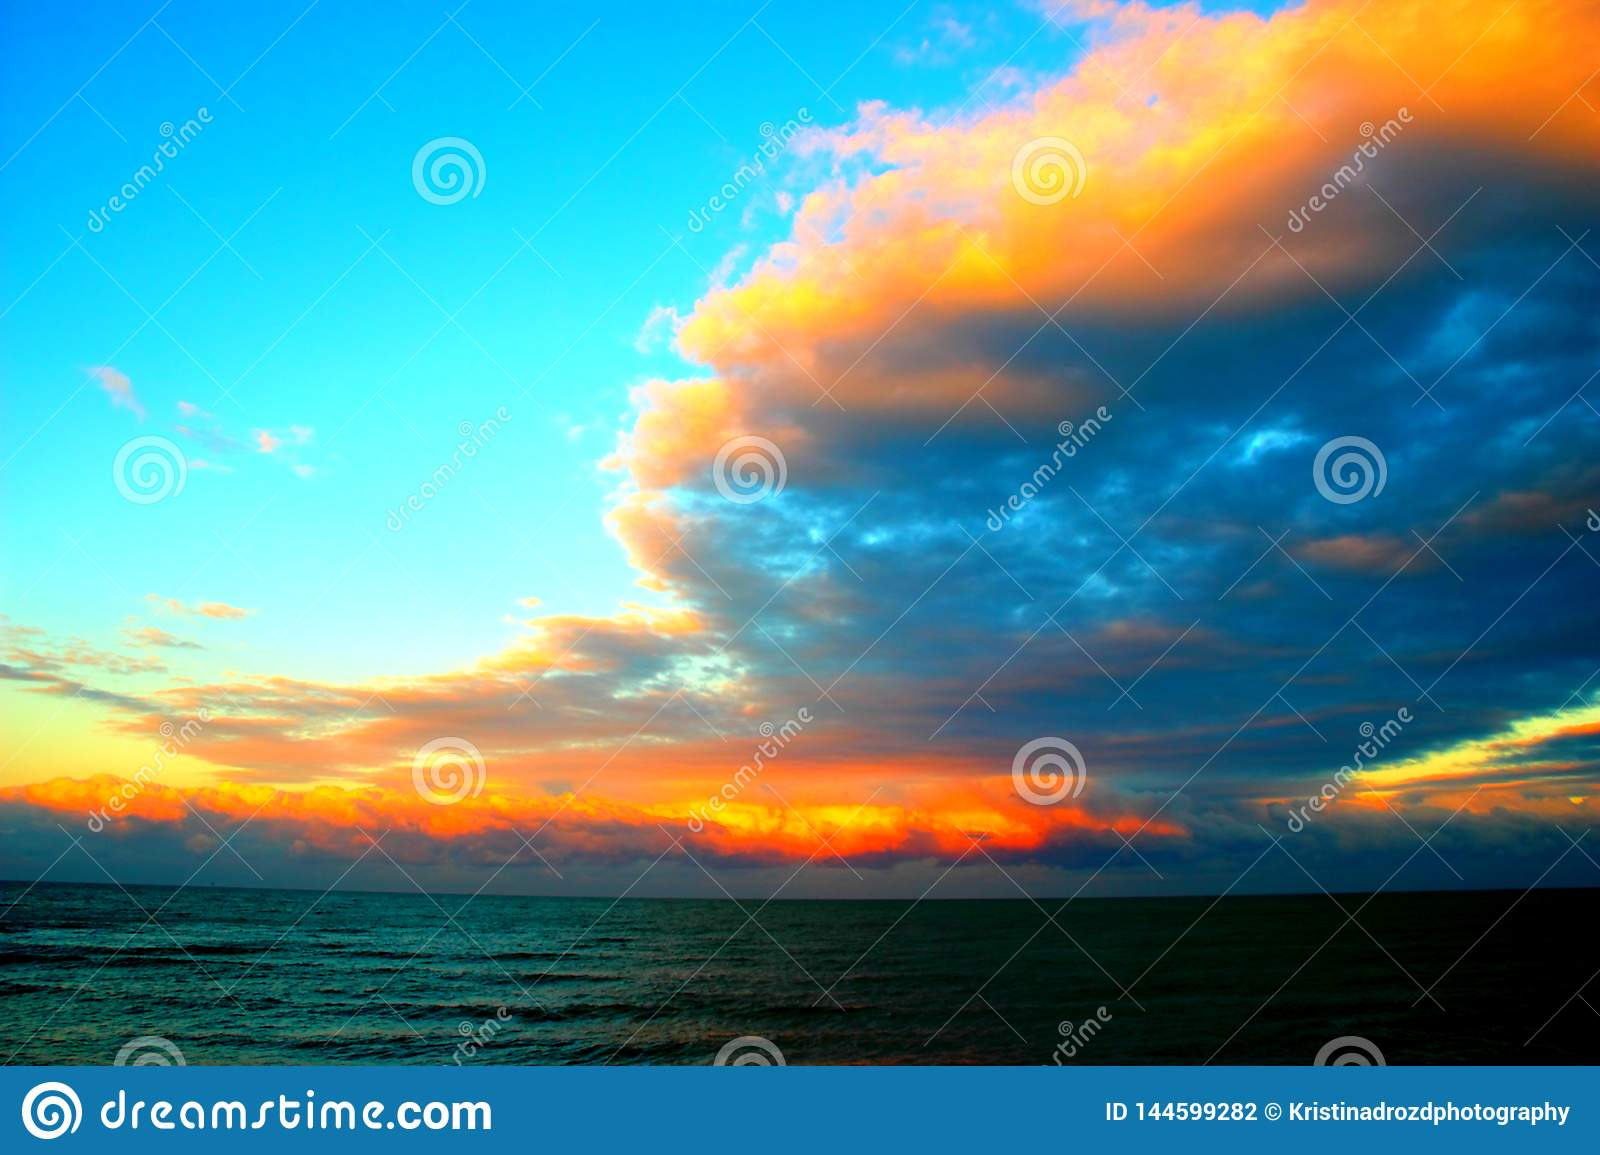 Amazing clouds over the sea during sunset